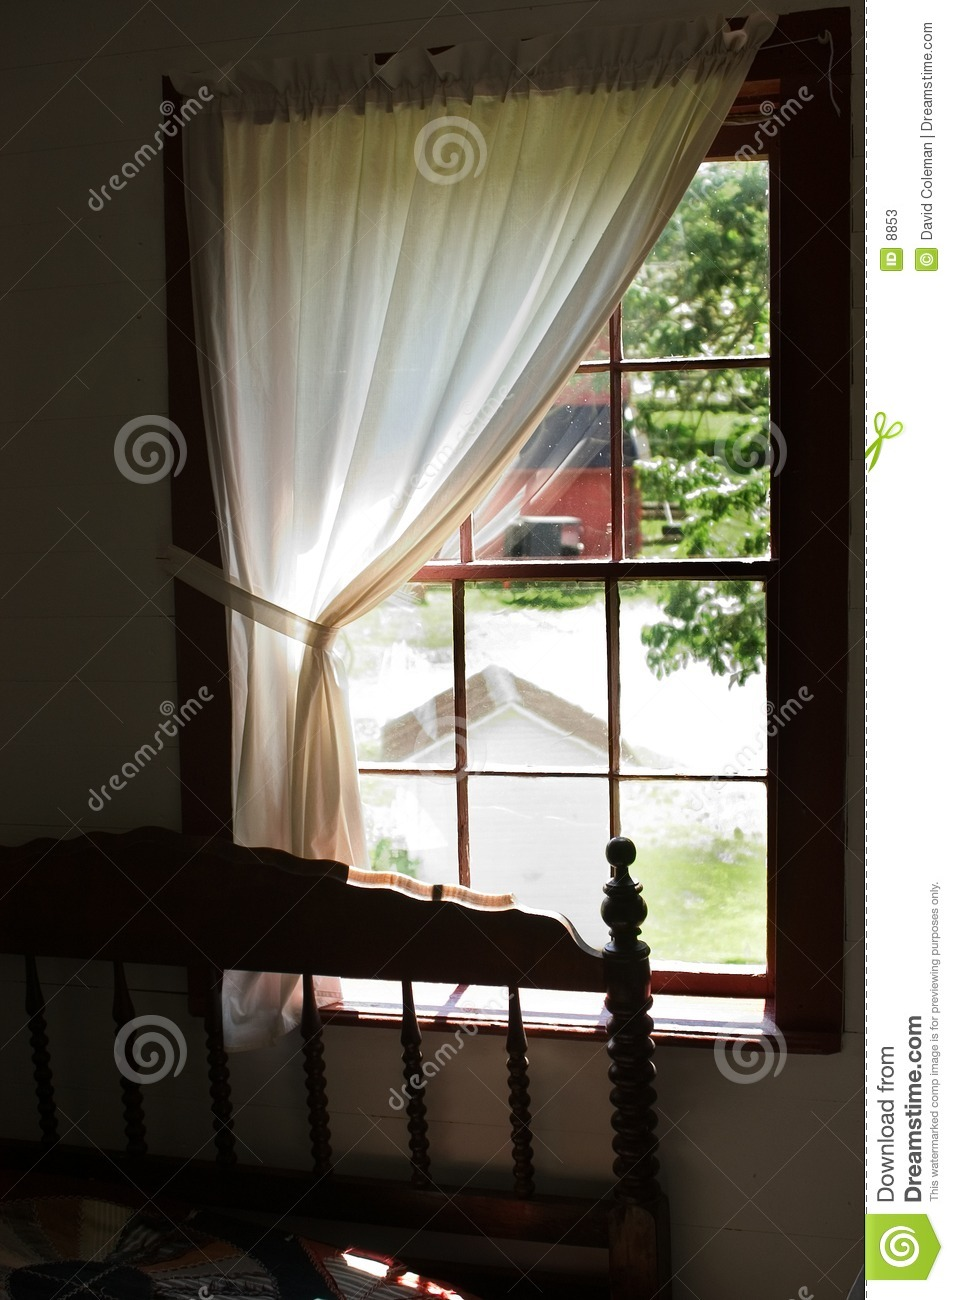 Stock Image Dreamstime View From An Amish Bedroom Window Stock Photos Image 8853